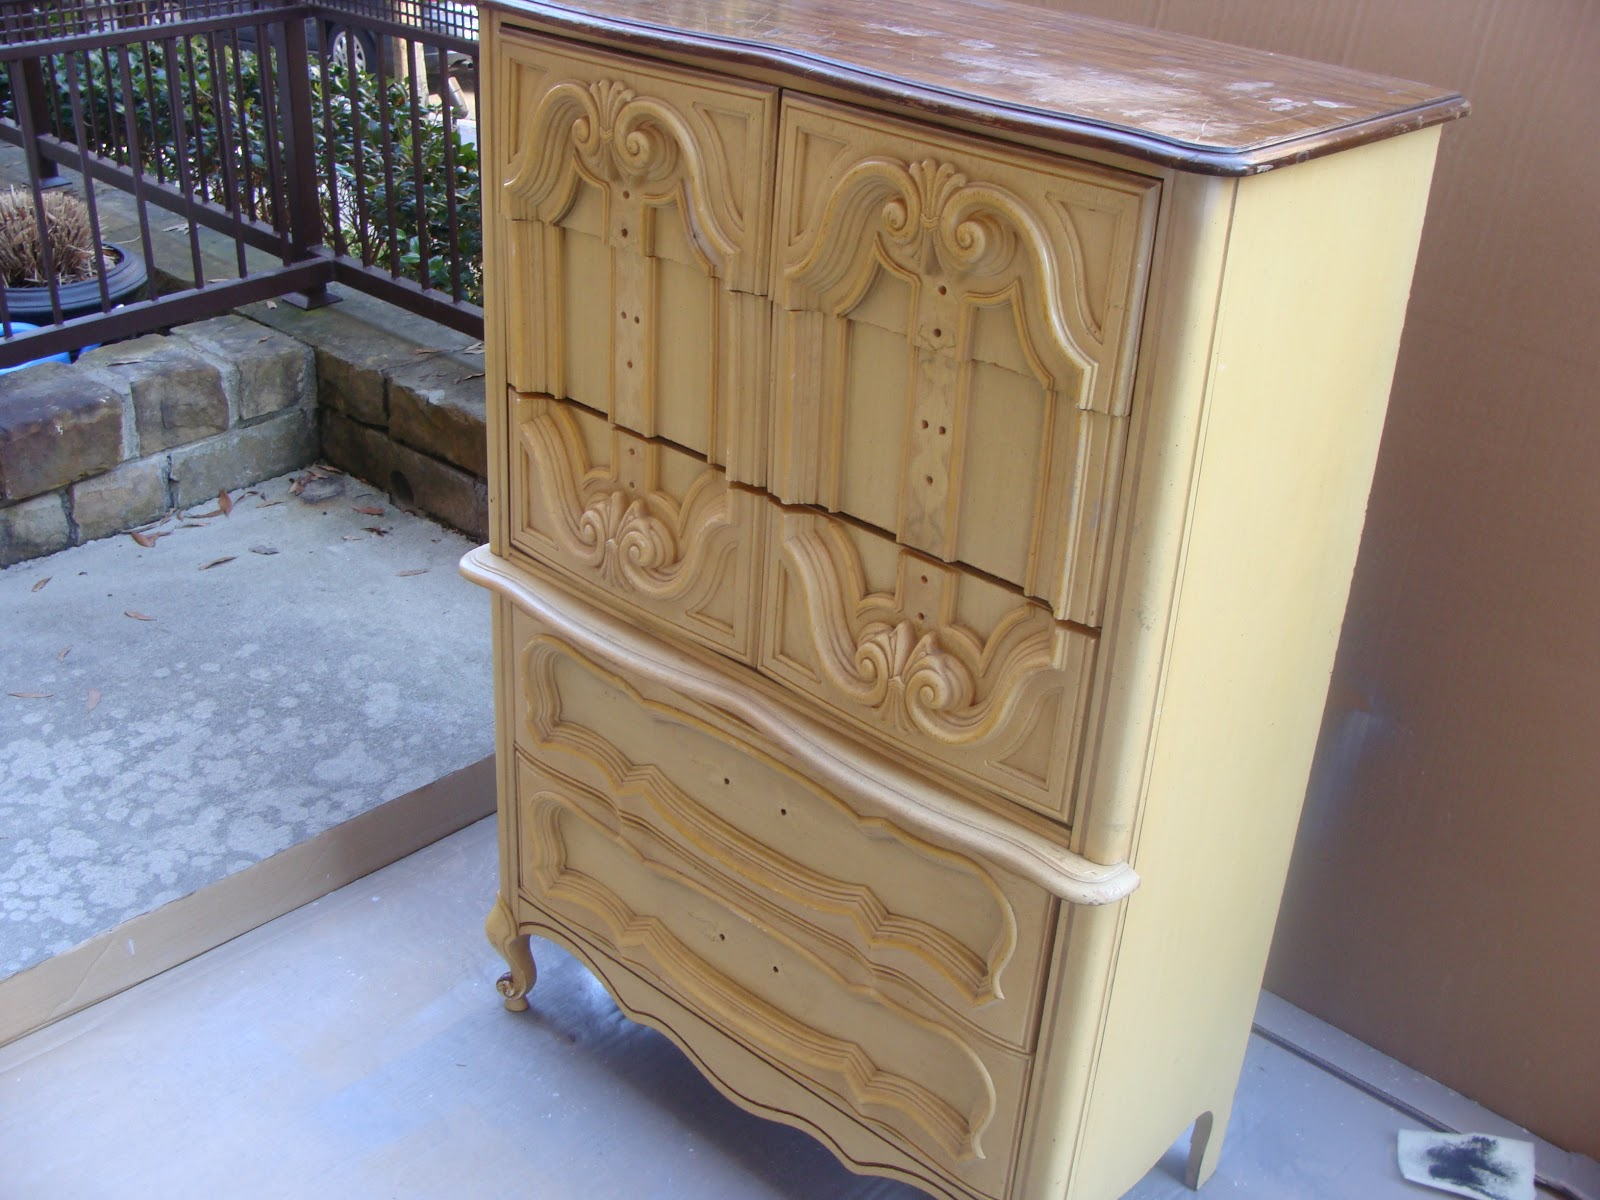 Charming Hollywood Regency Furniture On A Budget #14: A Wonderful And Corky Lady Was Selling A Set Of 2 Nightstands 1 Dresser And 1 Chest Of Drawers For $395 And After Seeing All That Was Out There In Retail In ...